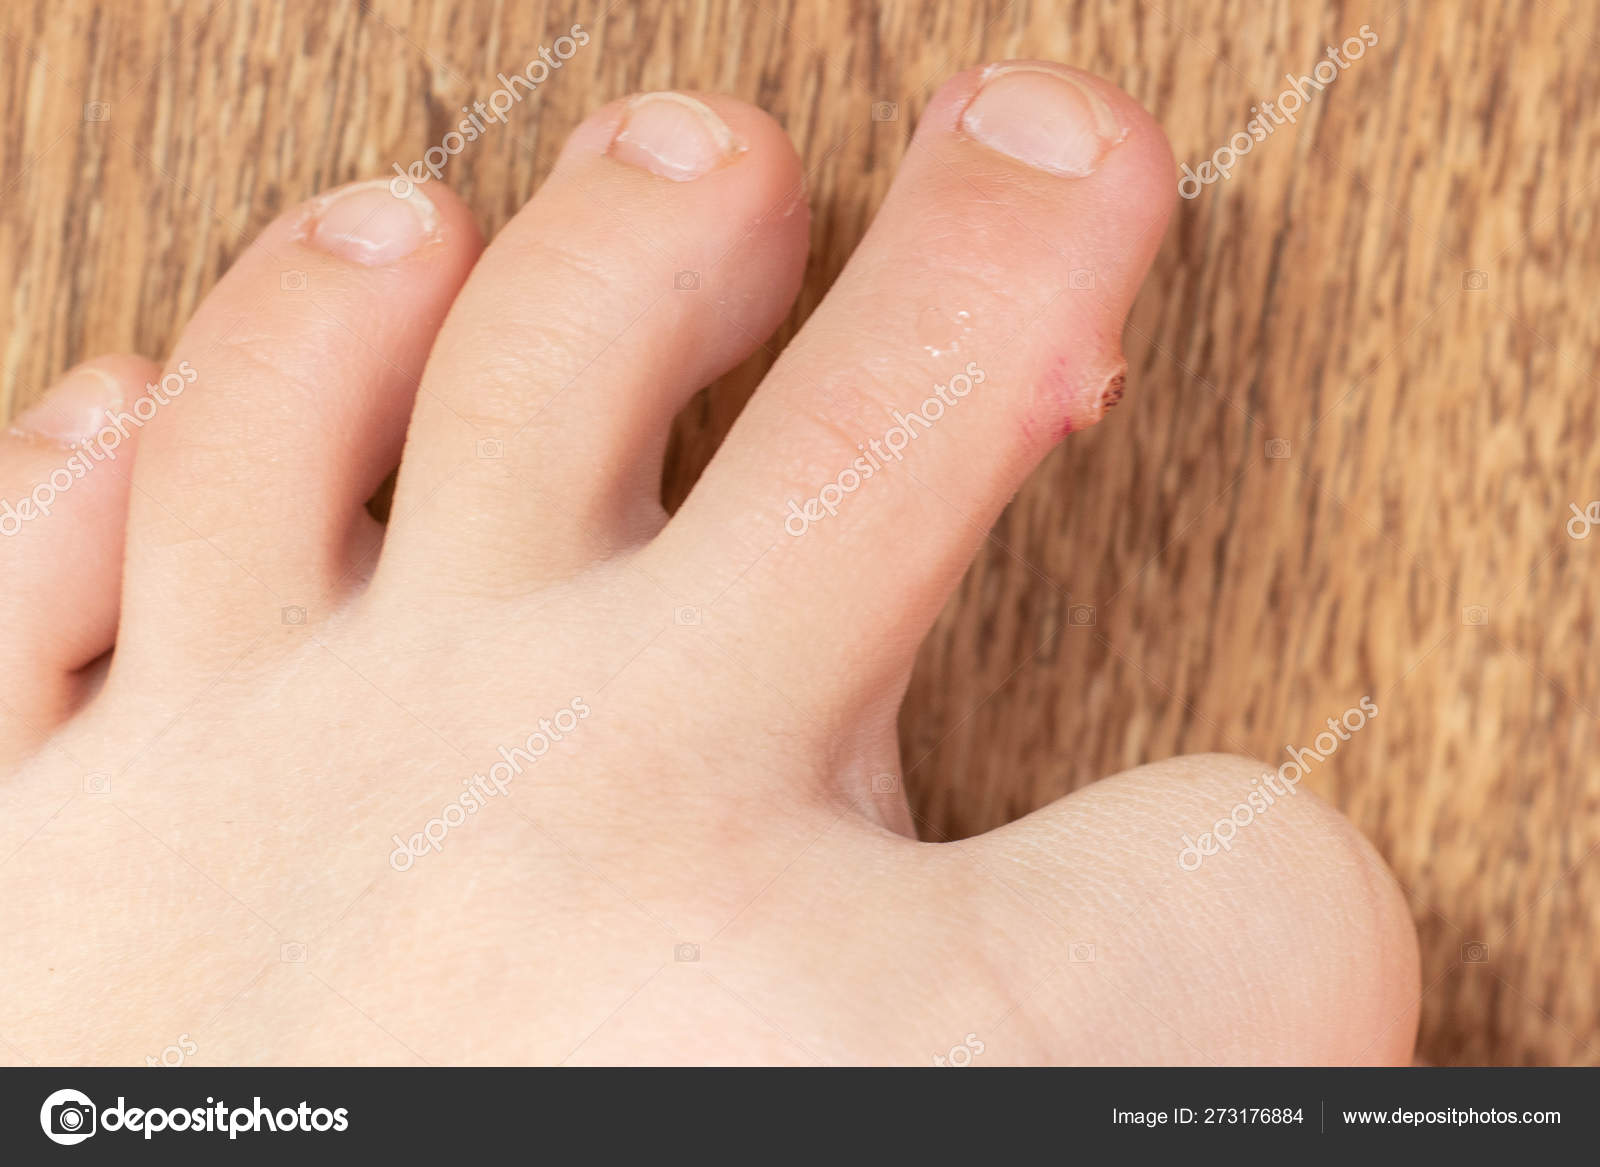 Wart foot cause. Plantar wart on foot symptoms - Anemie regim